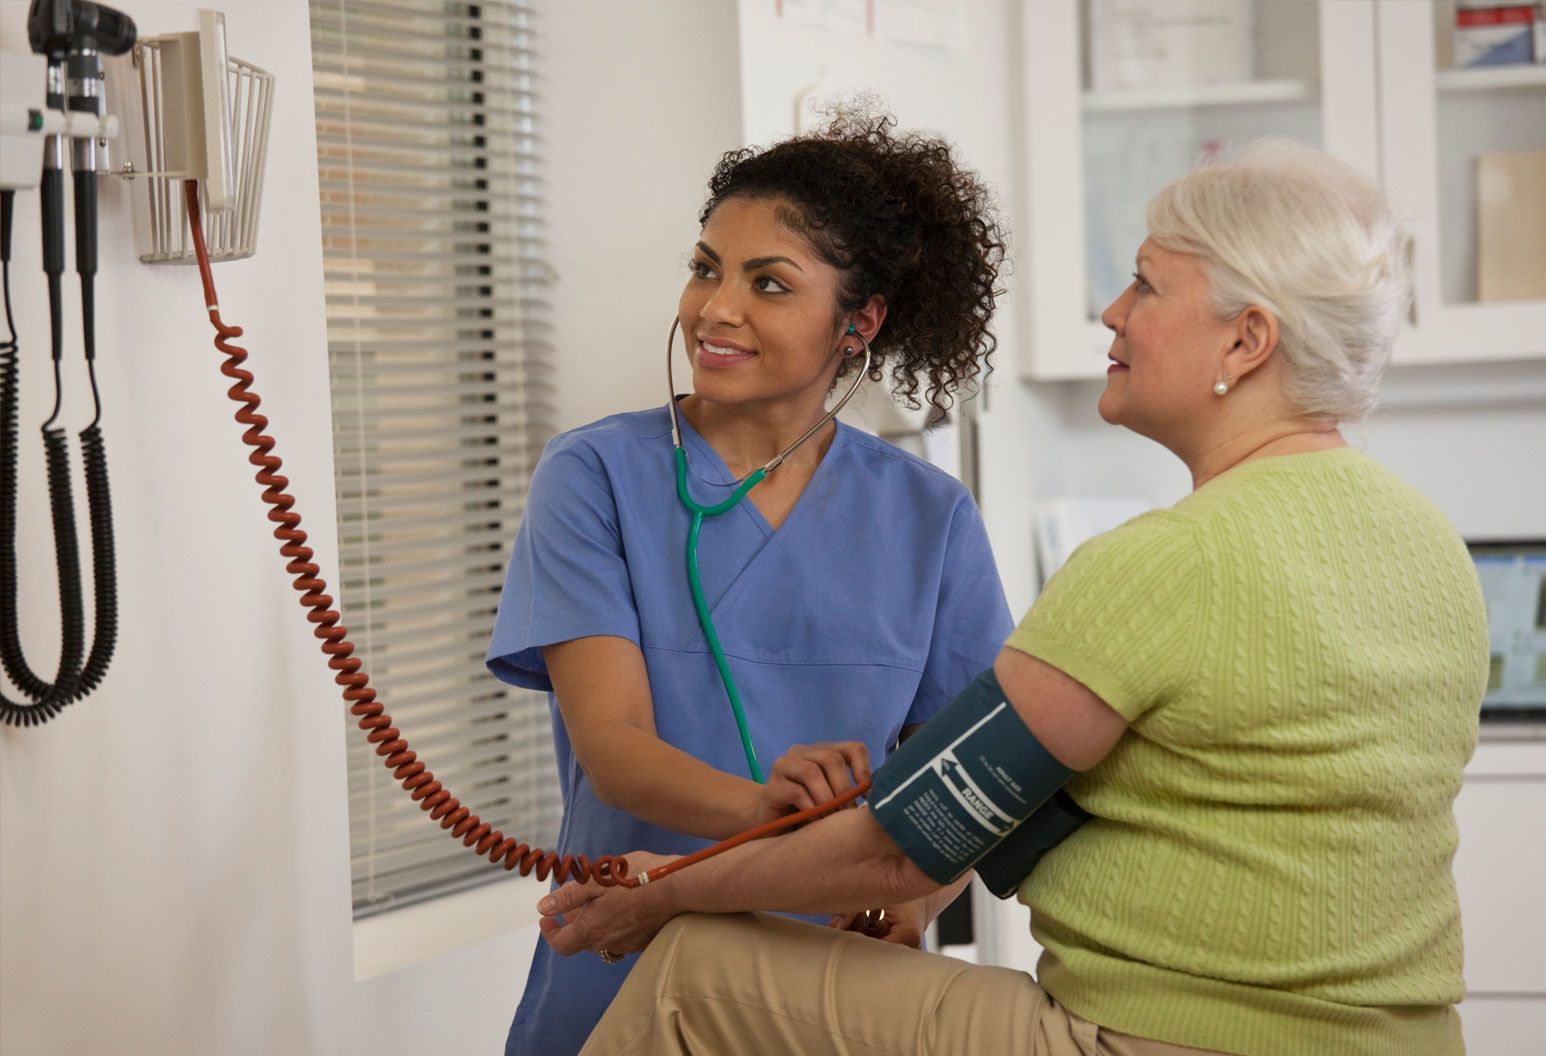 A young healthcare worker takes an elderly woman's blood pressure.